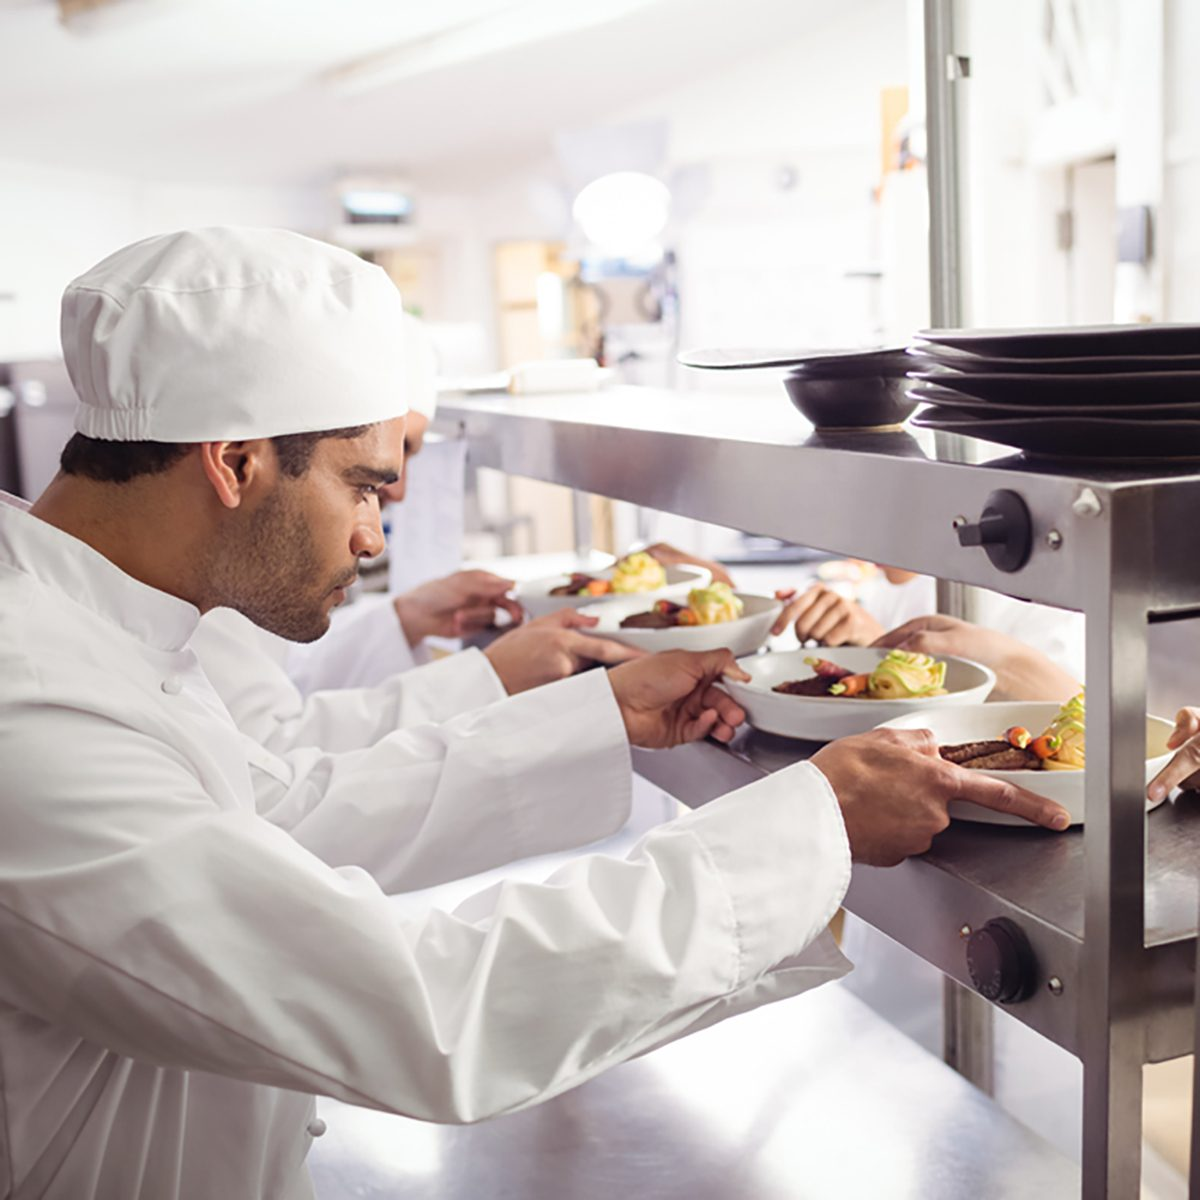 Chefs passing ready food to waiter at order station in commercial kitchen